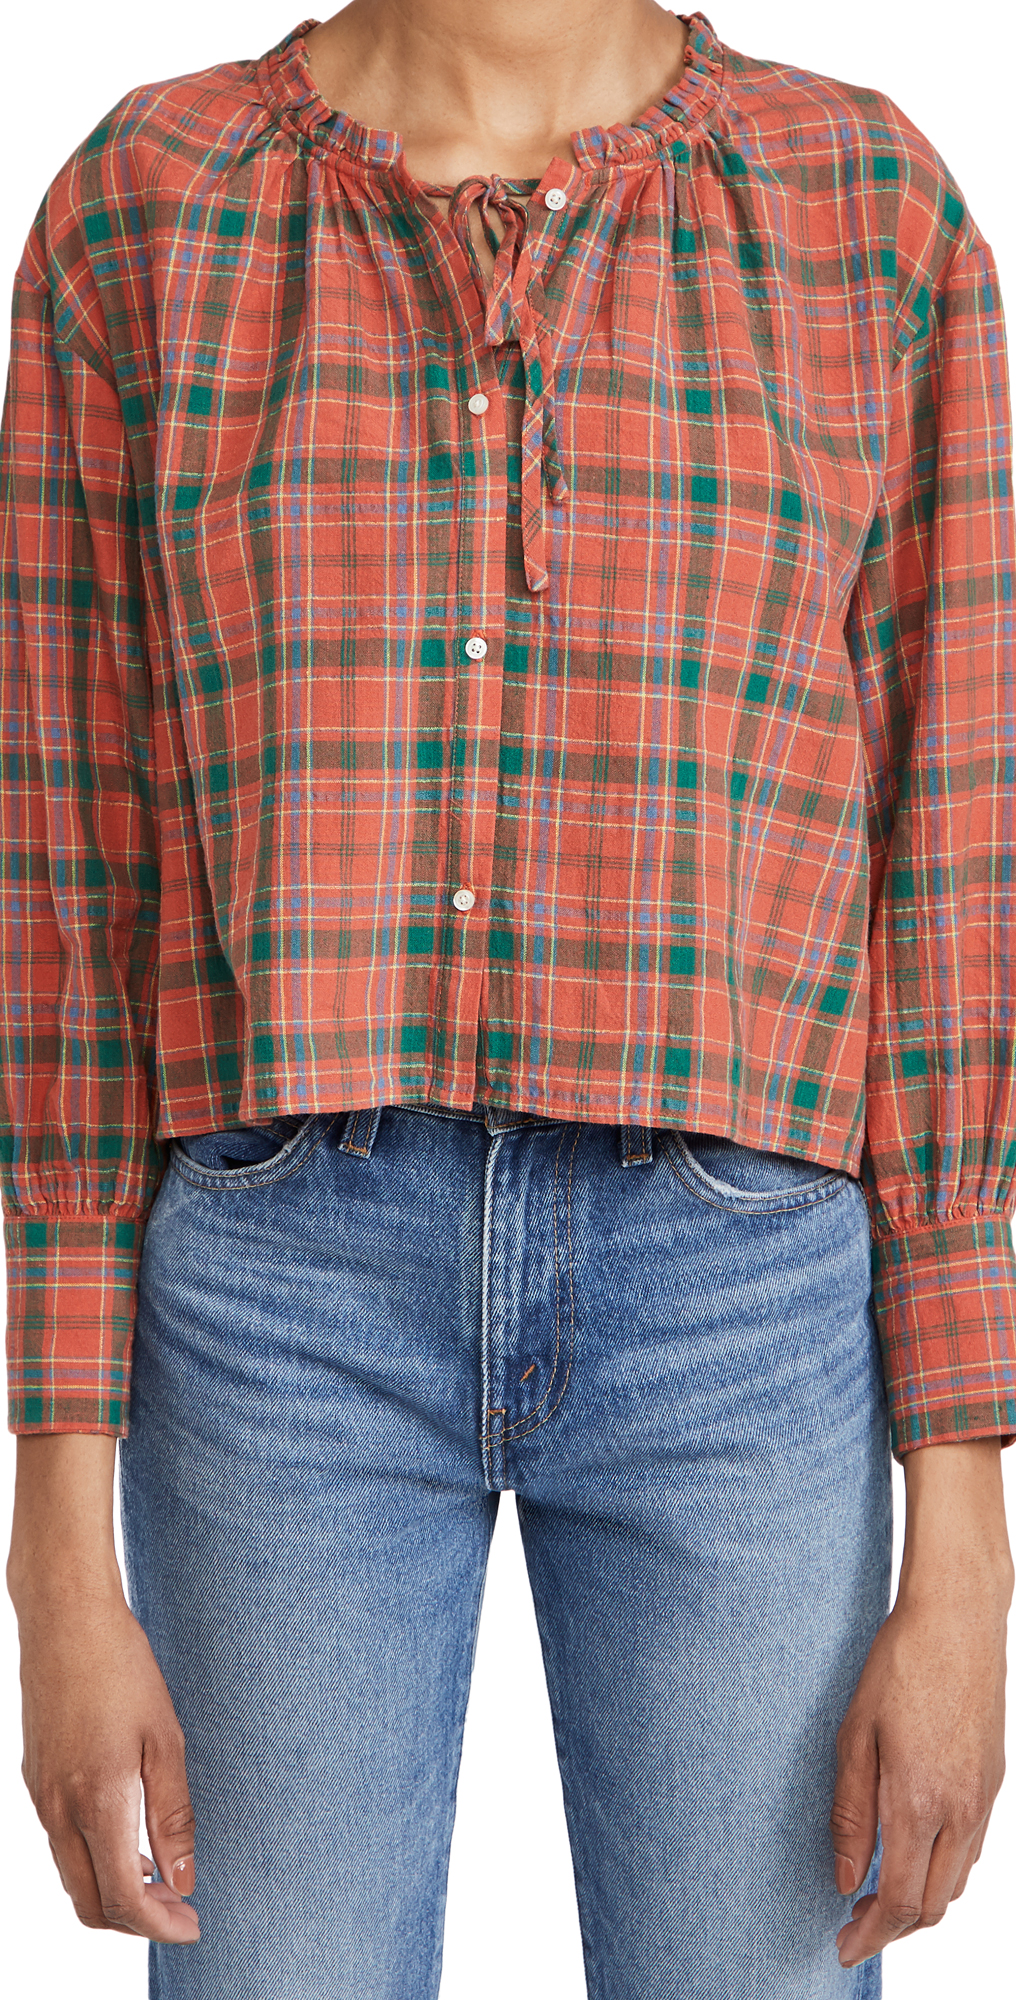 THE GREAT. The Forage Top